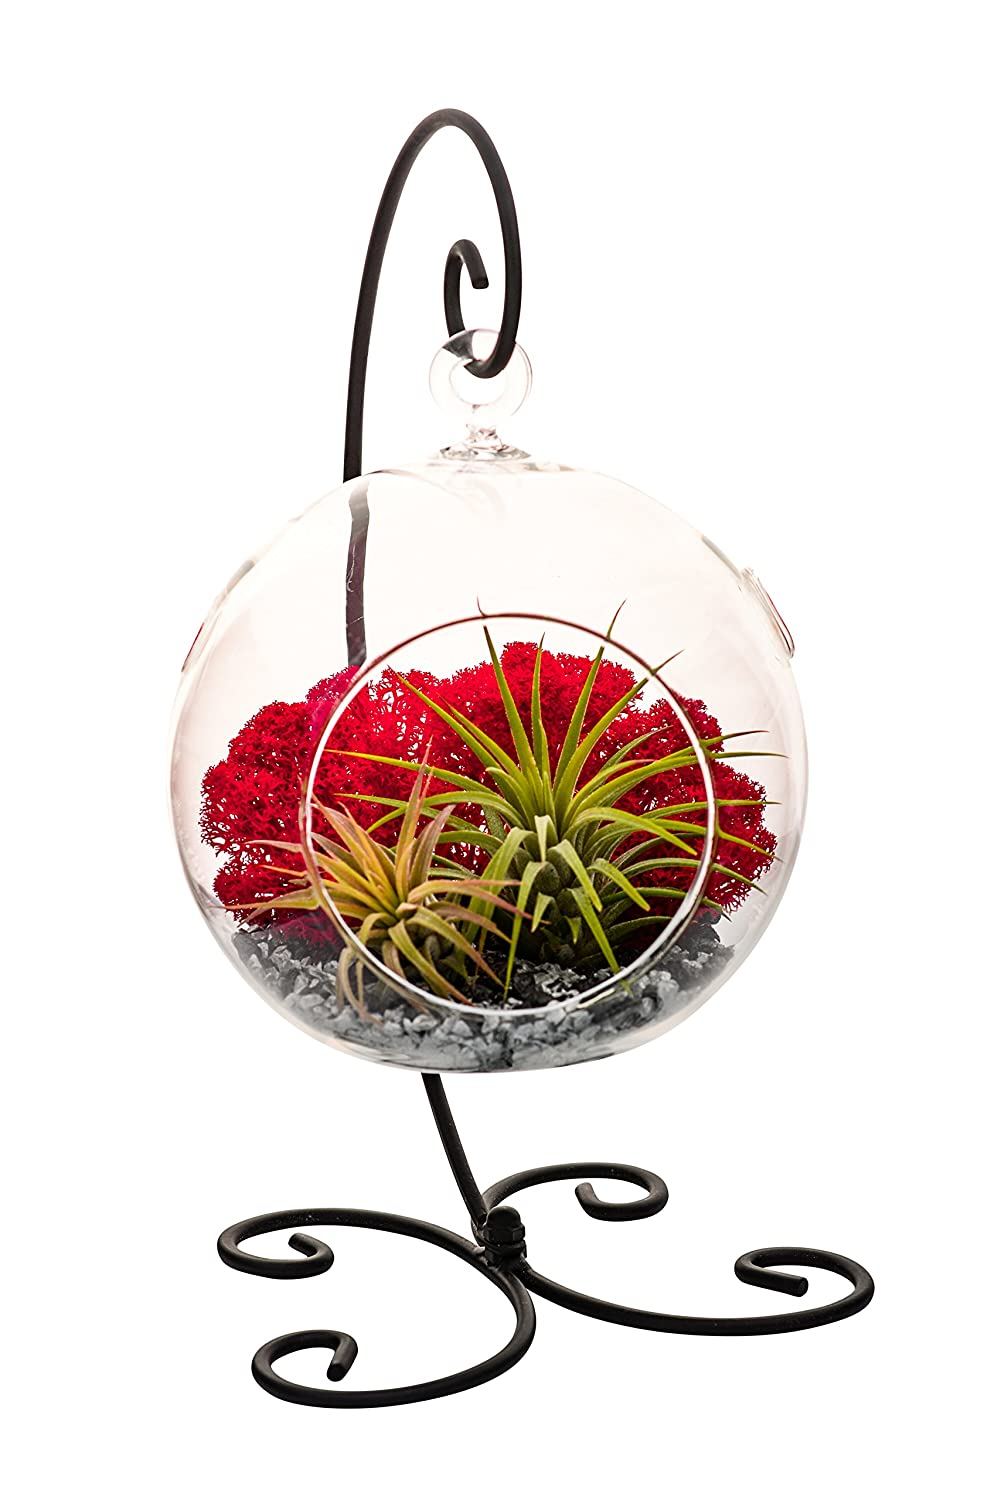 Air Plant Terrarium Kit with Black and Silver Rocks, Red Moss Black Metal Stand 5 Round Glass